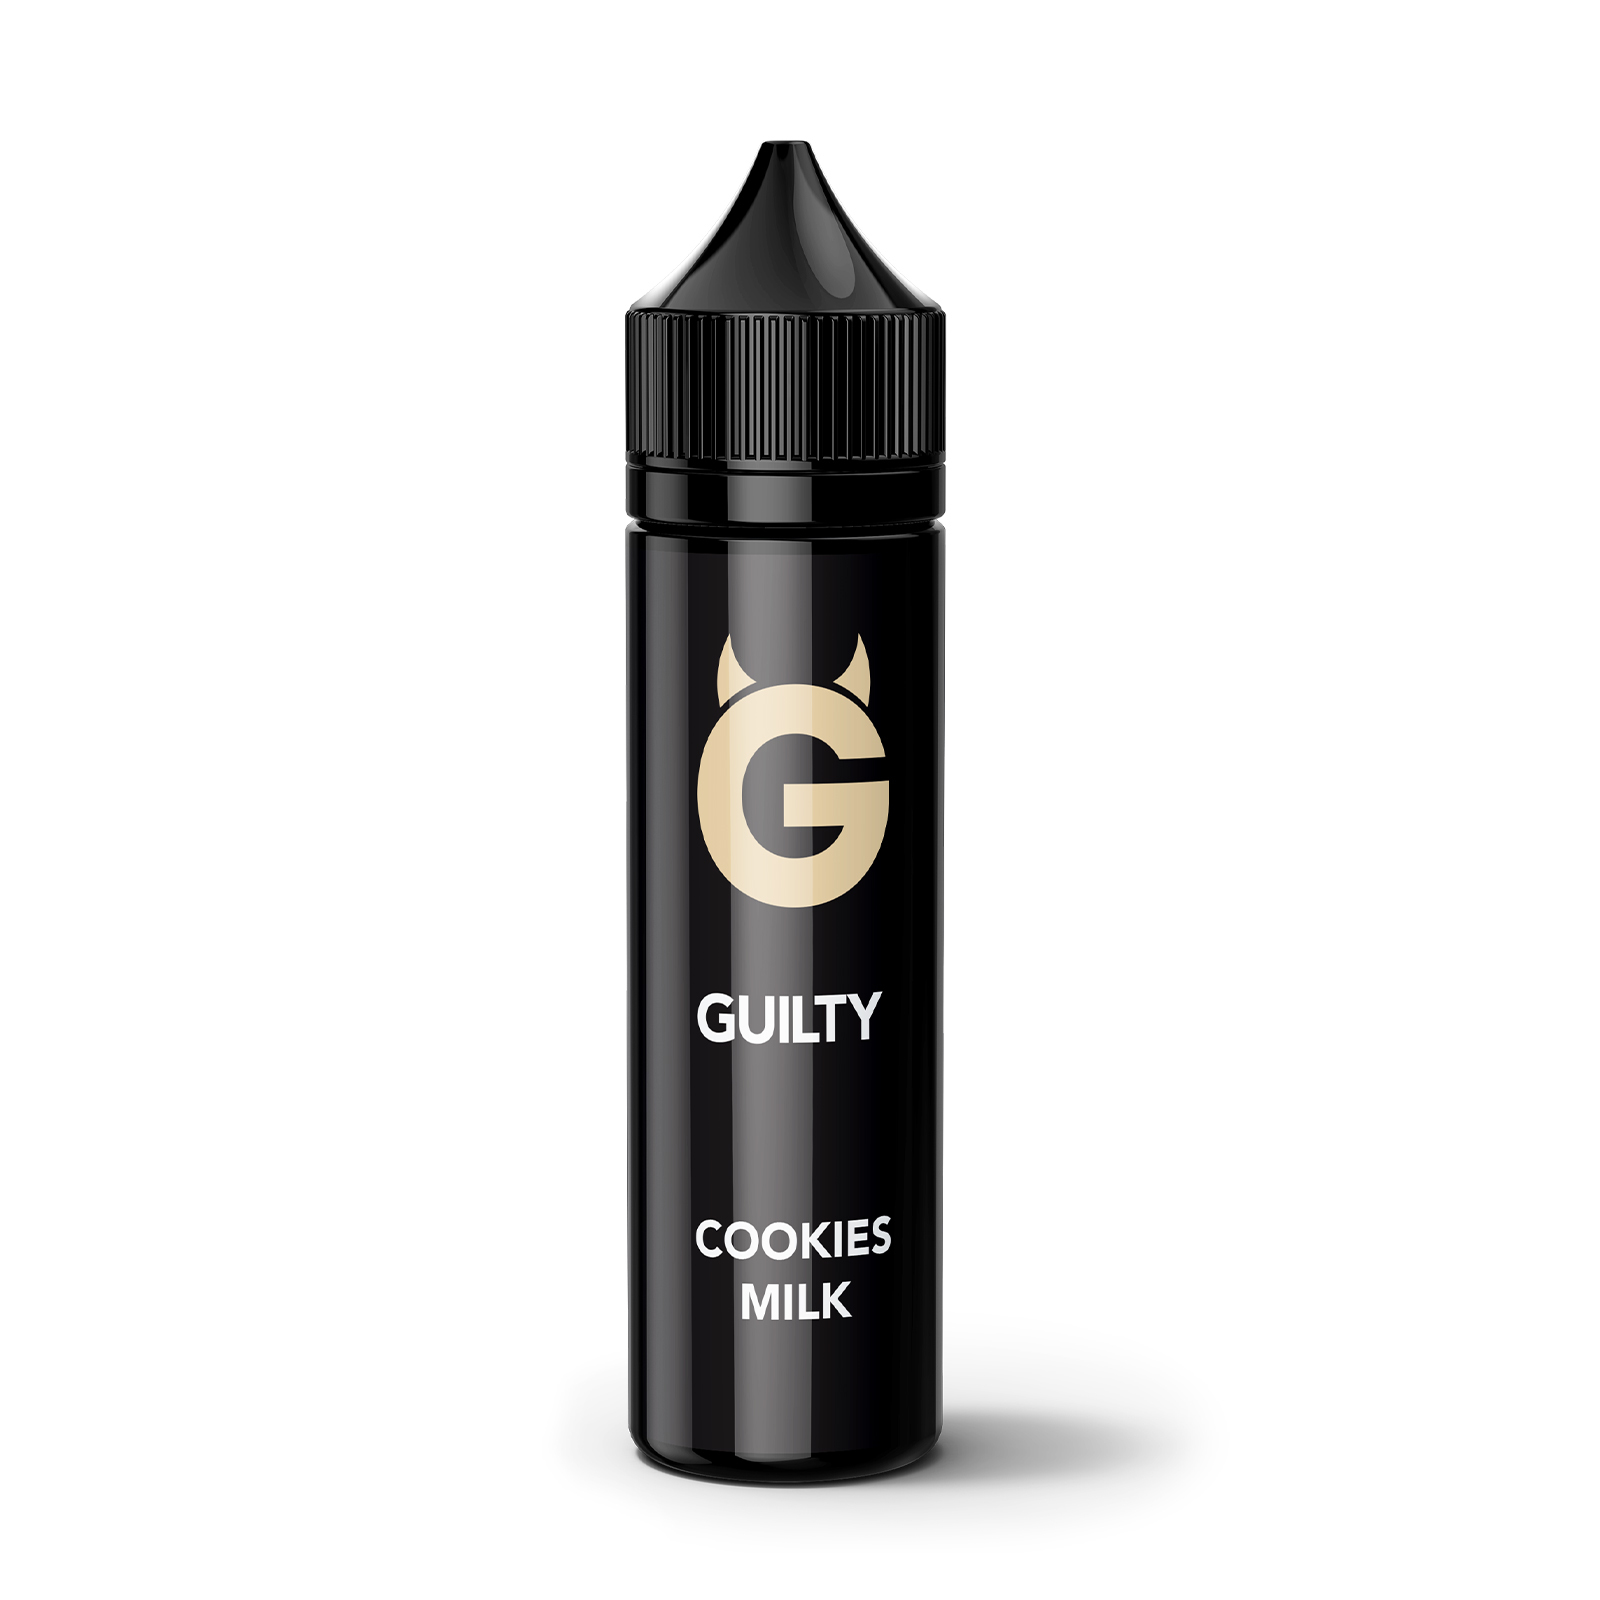 Guilty Cookies Milk